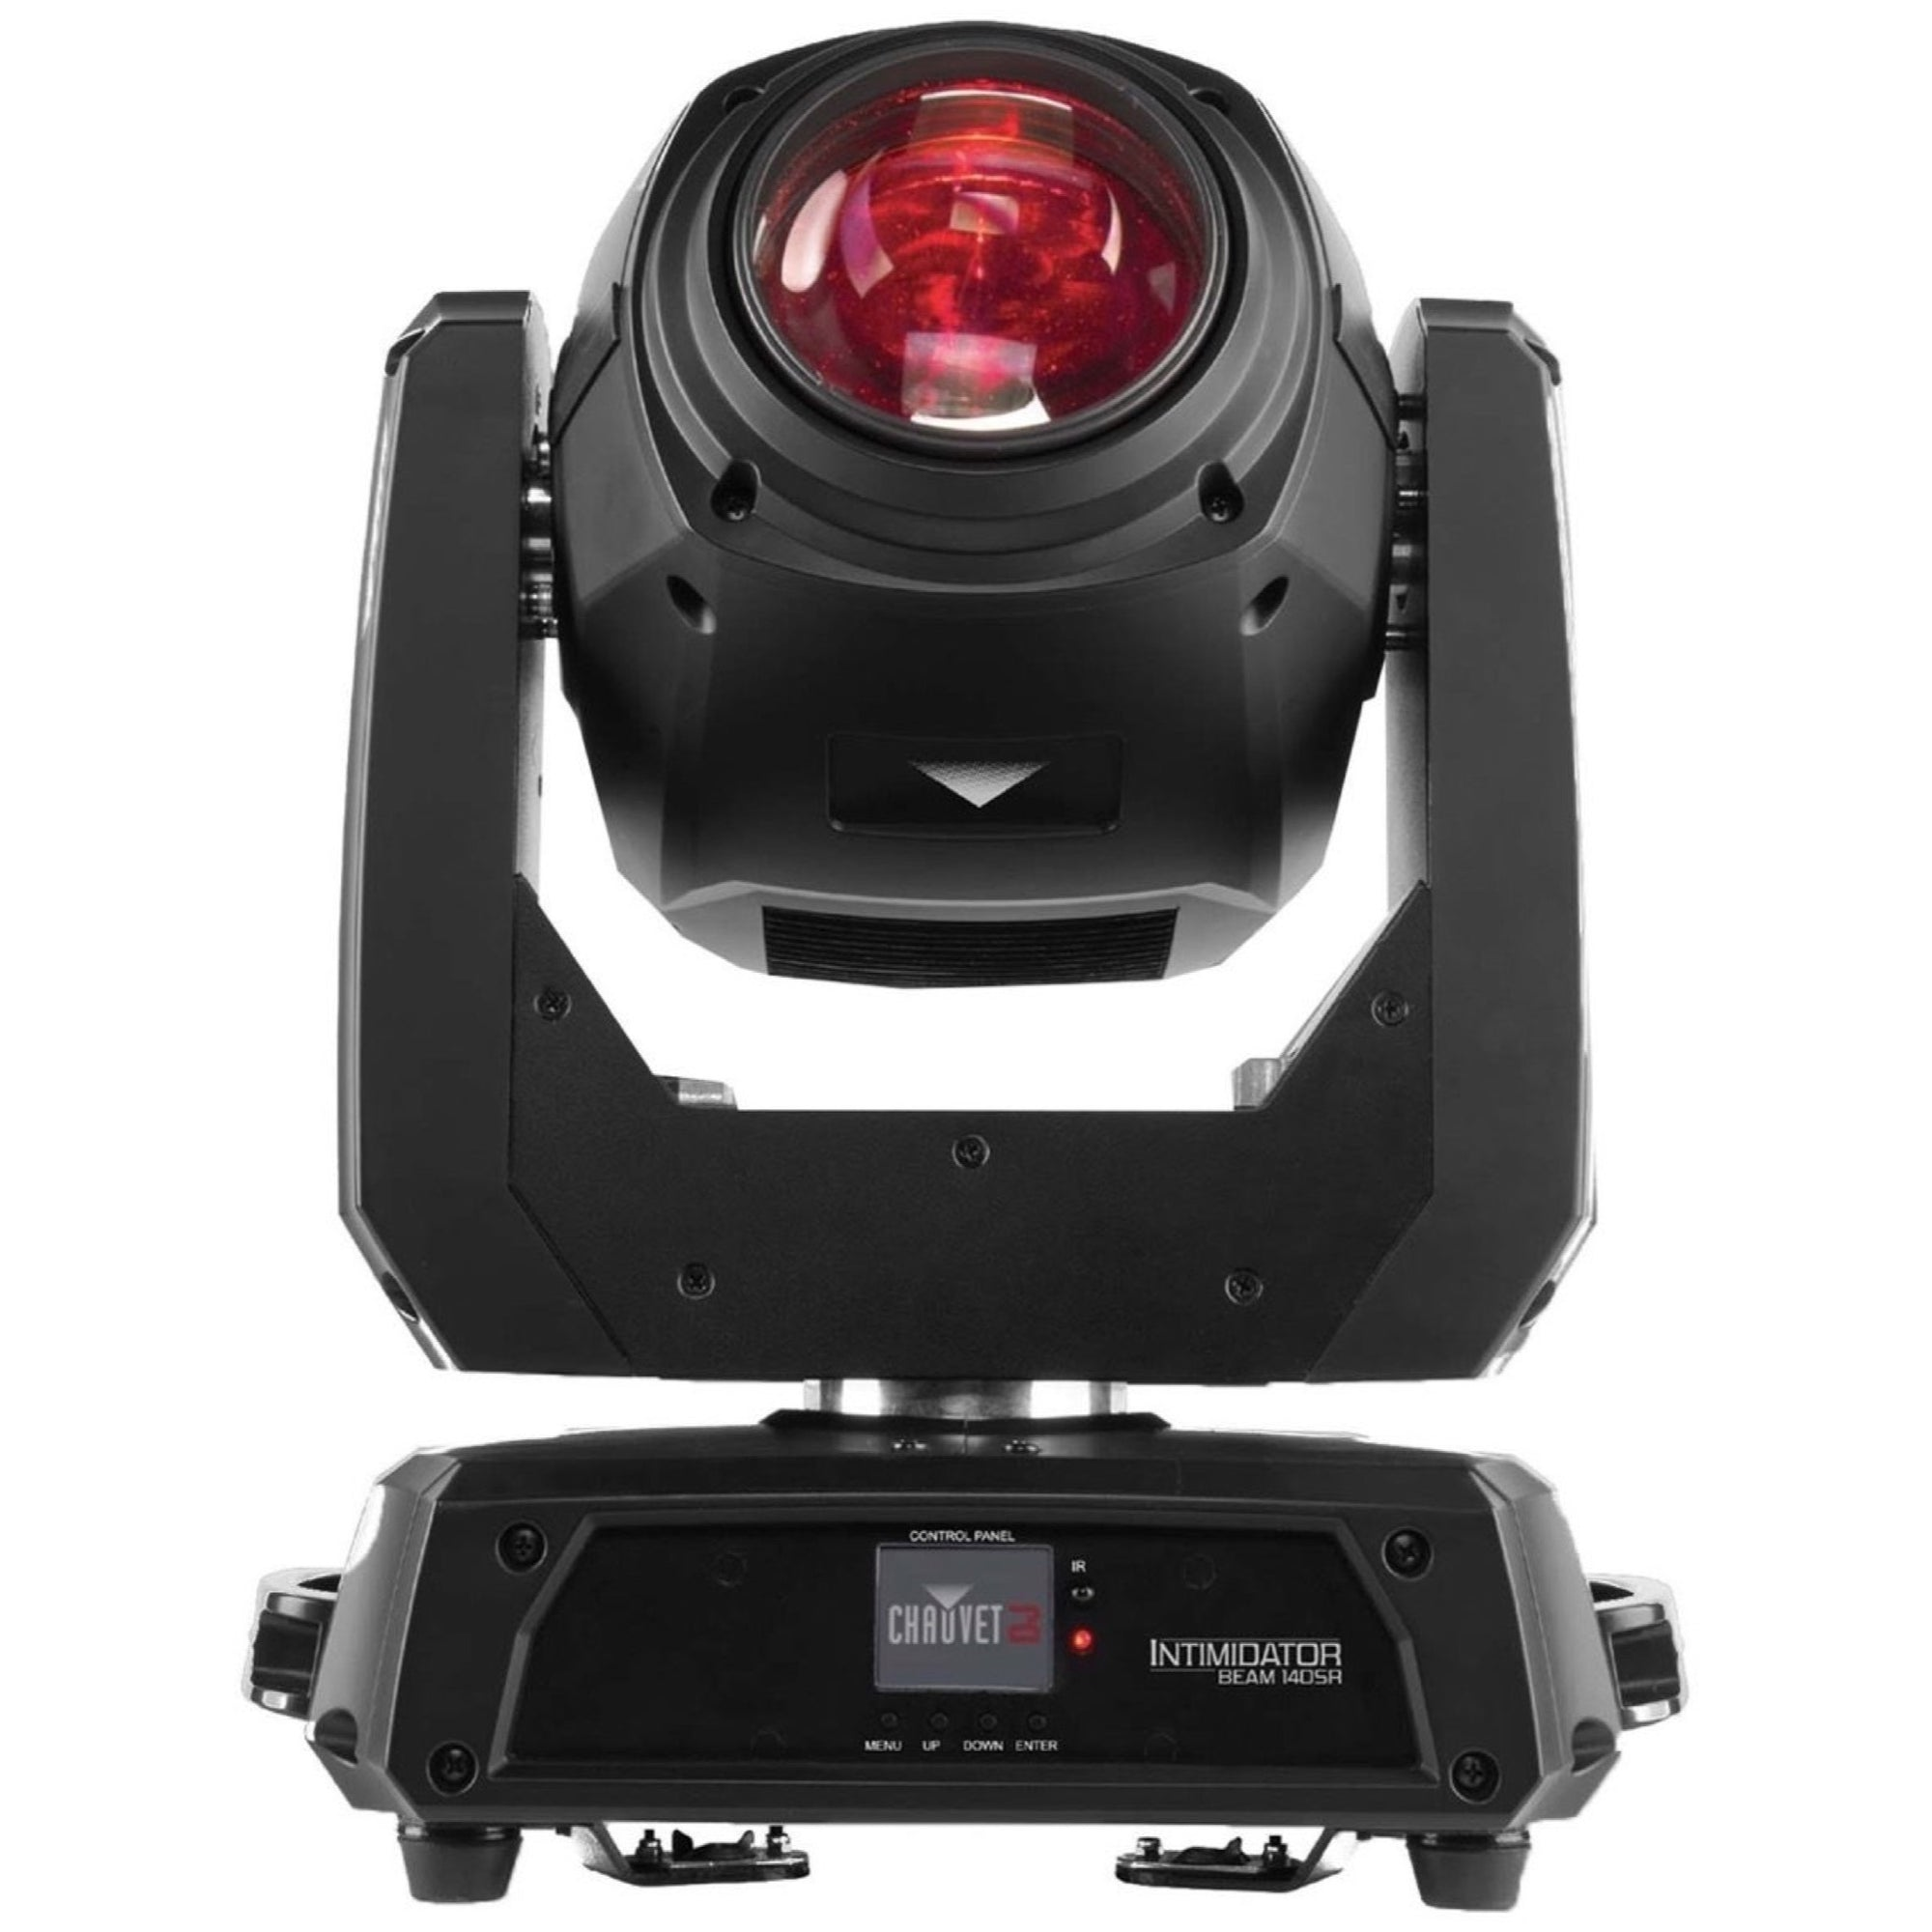 Chauvet DJ Intimidator Beam 140SR Light